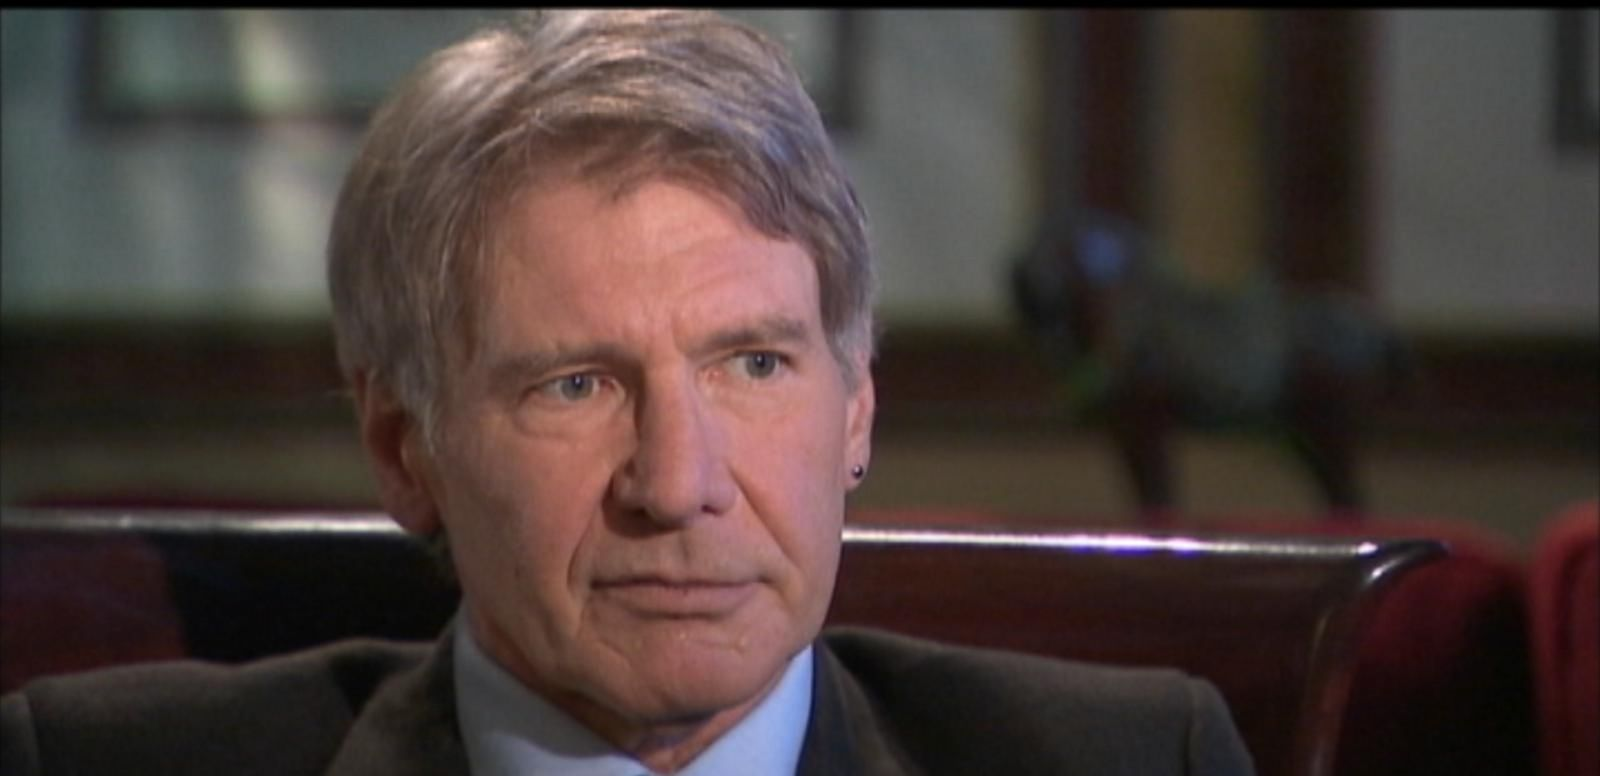 VIDEO: Harrison Ford Loves the 'Freedom of Flight'